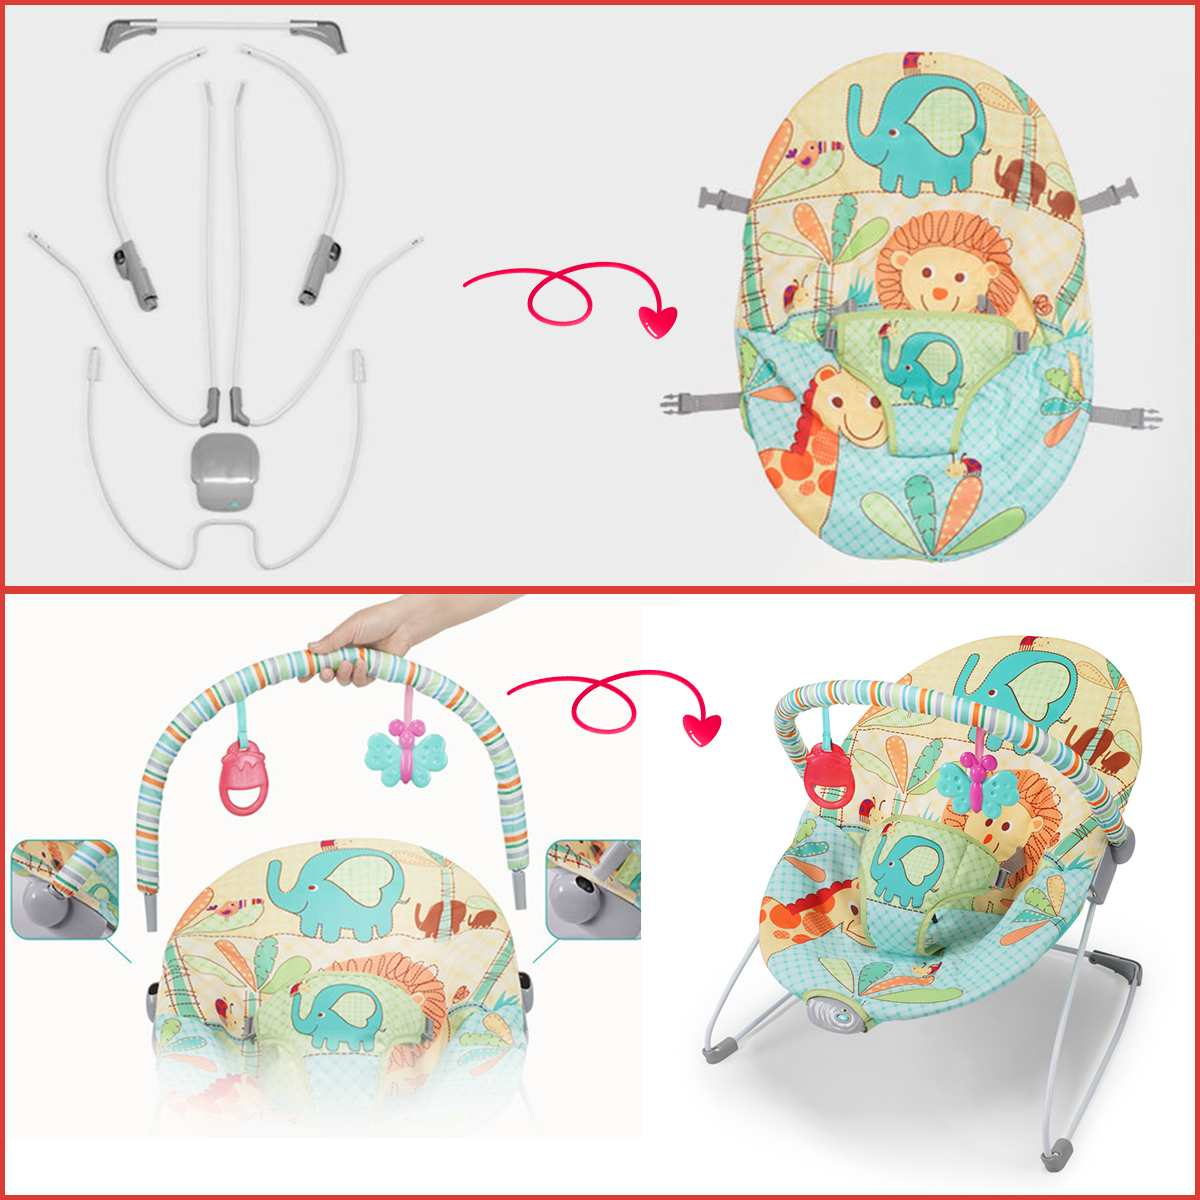 Folding Multifunctional Baby 0 12 month Rocking Chair Baby Cradle Chair Newborn Comfort Chair Shaker Swing Folding Multifunctional Baby 0-12 month Rocking Chair Baby Cradle Chair Newborn Comfort Chair Shaker Swing Chair Baby Bed